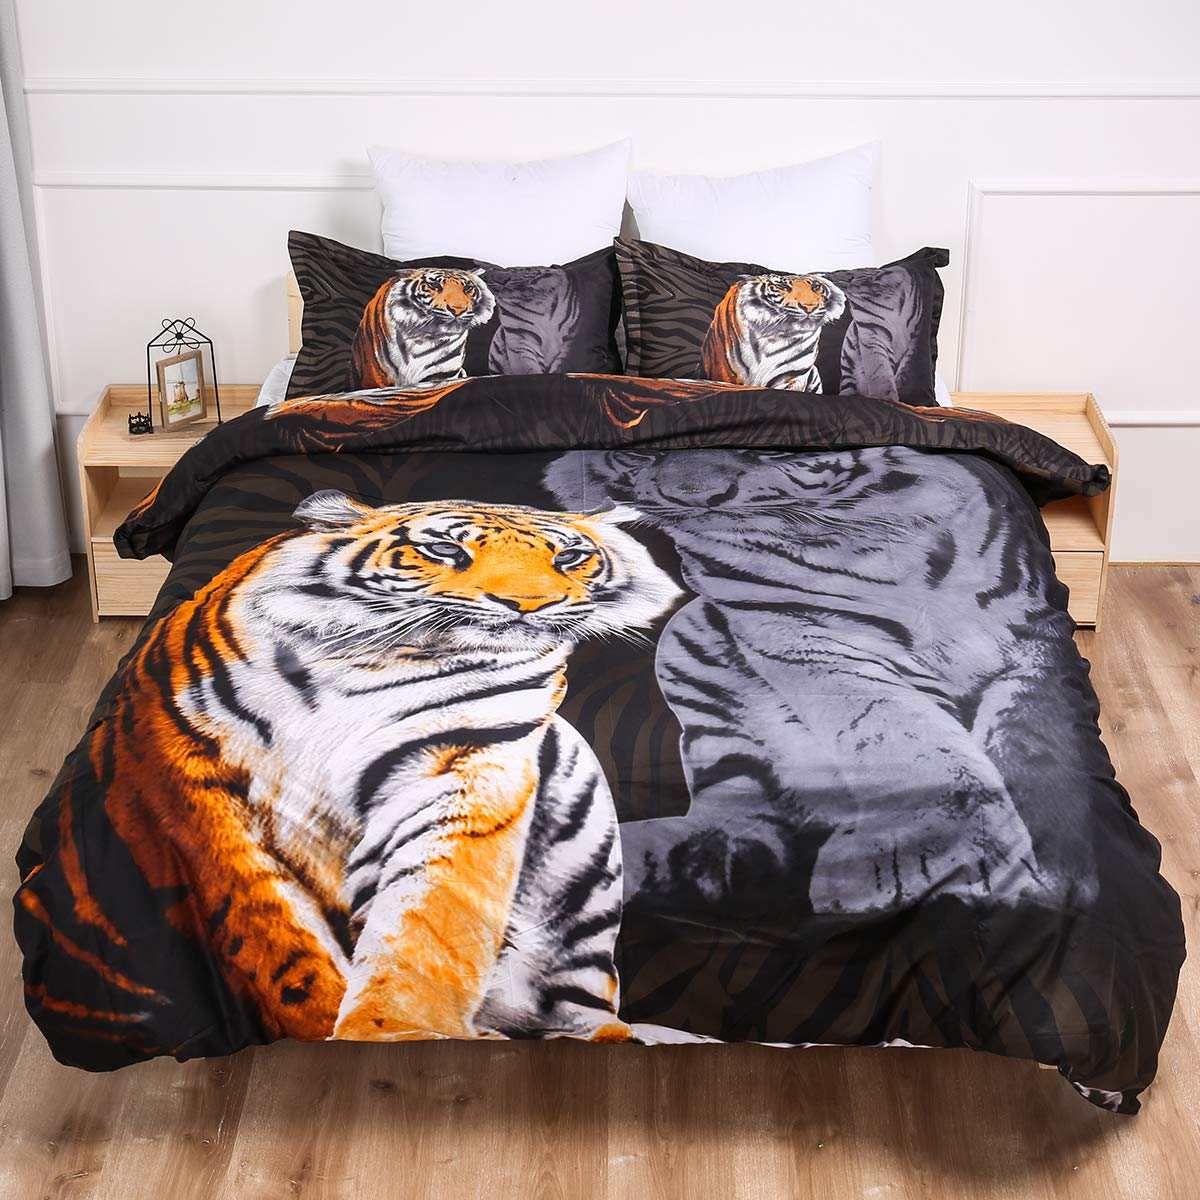 """Guidear 3D Printed Yellow Tiger Bedding Set for Boys Kids, 3 Pieces White Tiger Duvet Cover with 2 Pillowcases,Microfiber Black Comforter Cover with Zipper Closure Queen Size 90"""" x 90""""(Not Comforter)"""